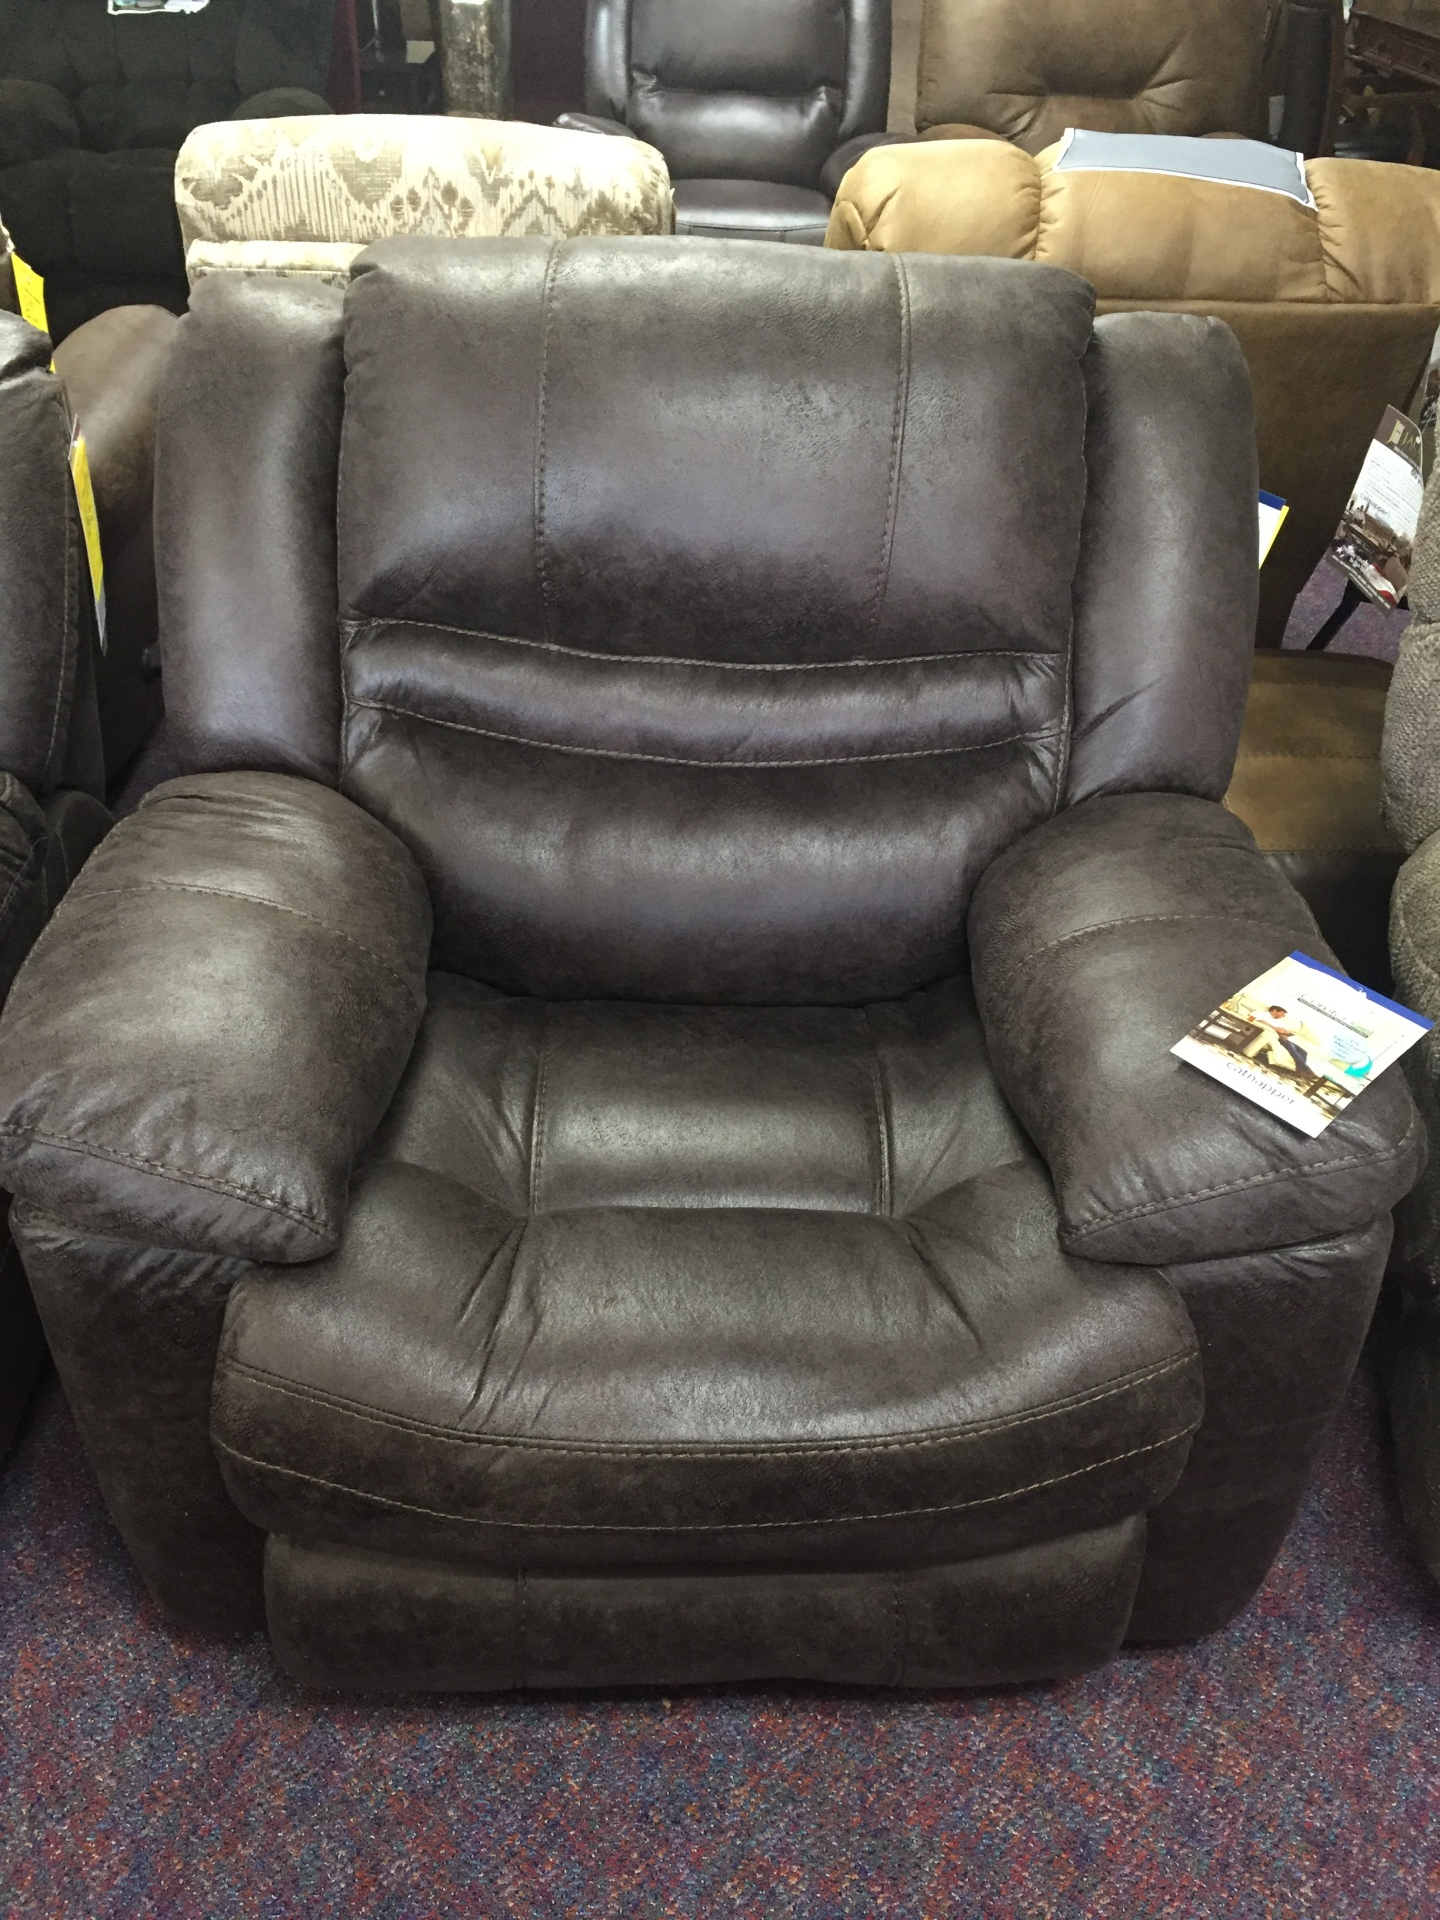 Catnapper Valiant Glider Recliner- $699.95